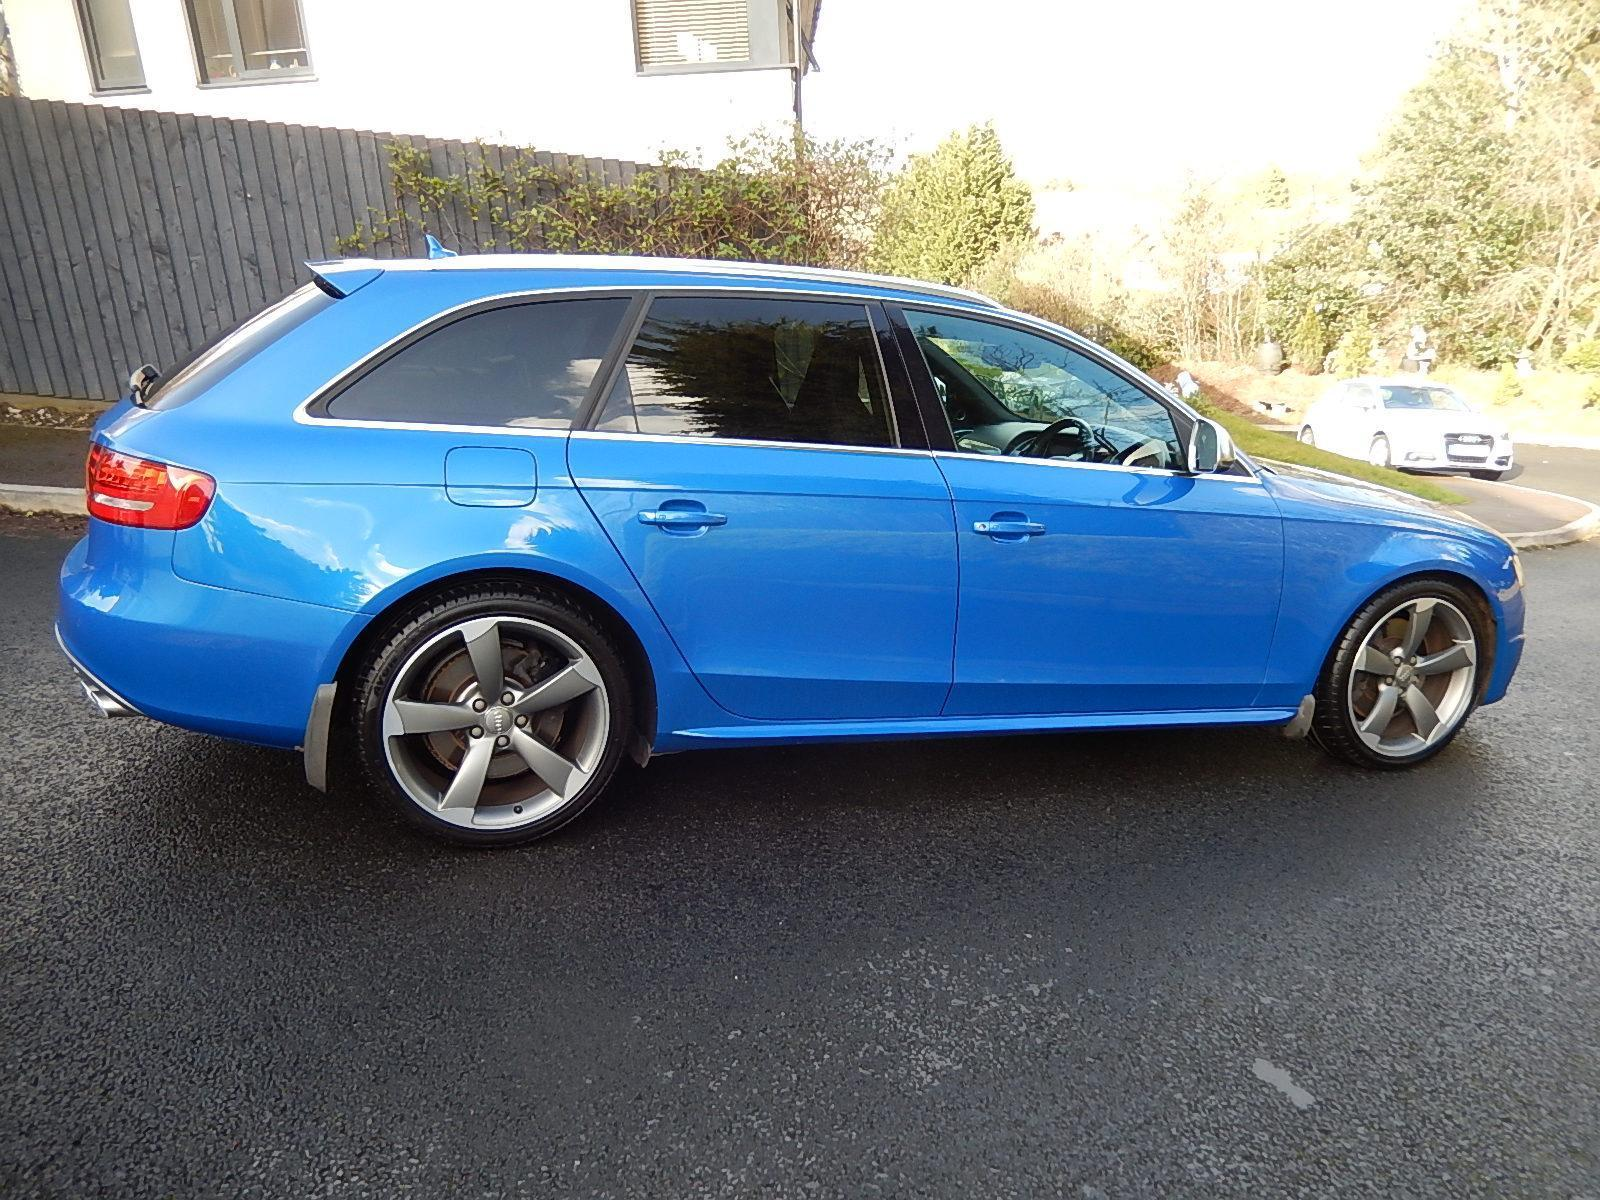 Used Cars Under $2000 Unique Used Audi S4 Cars for Sale